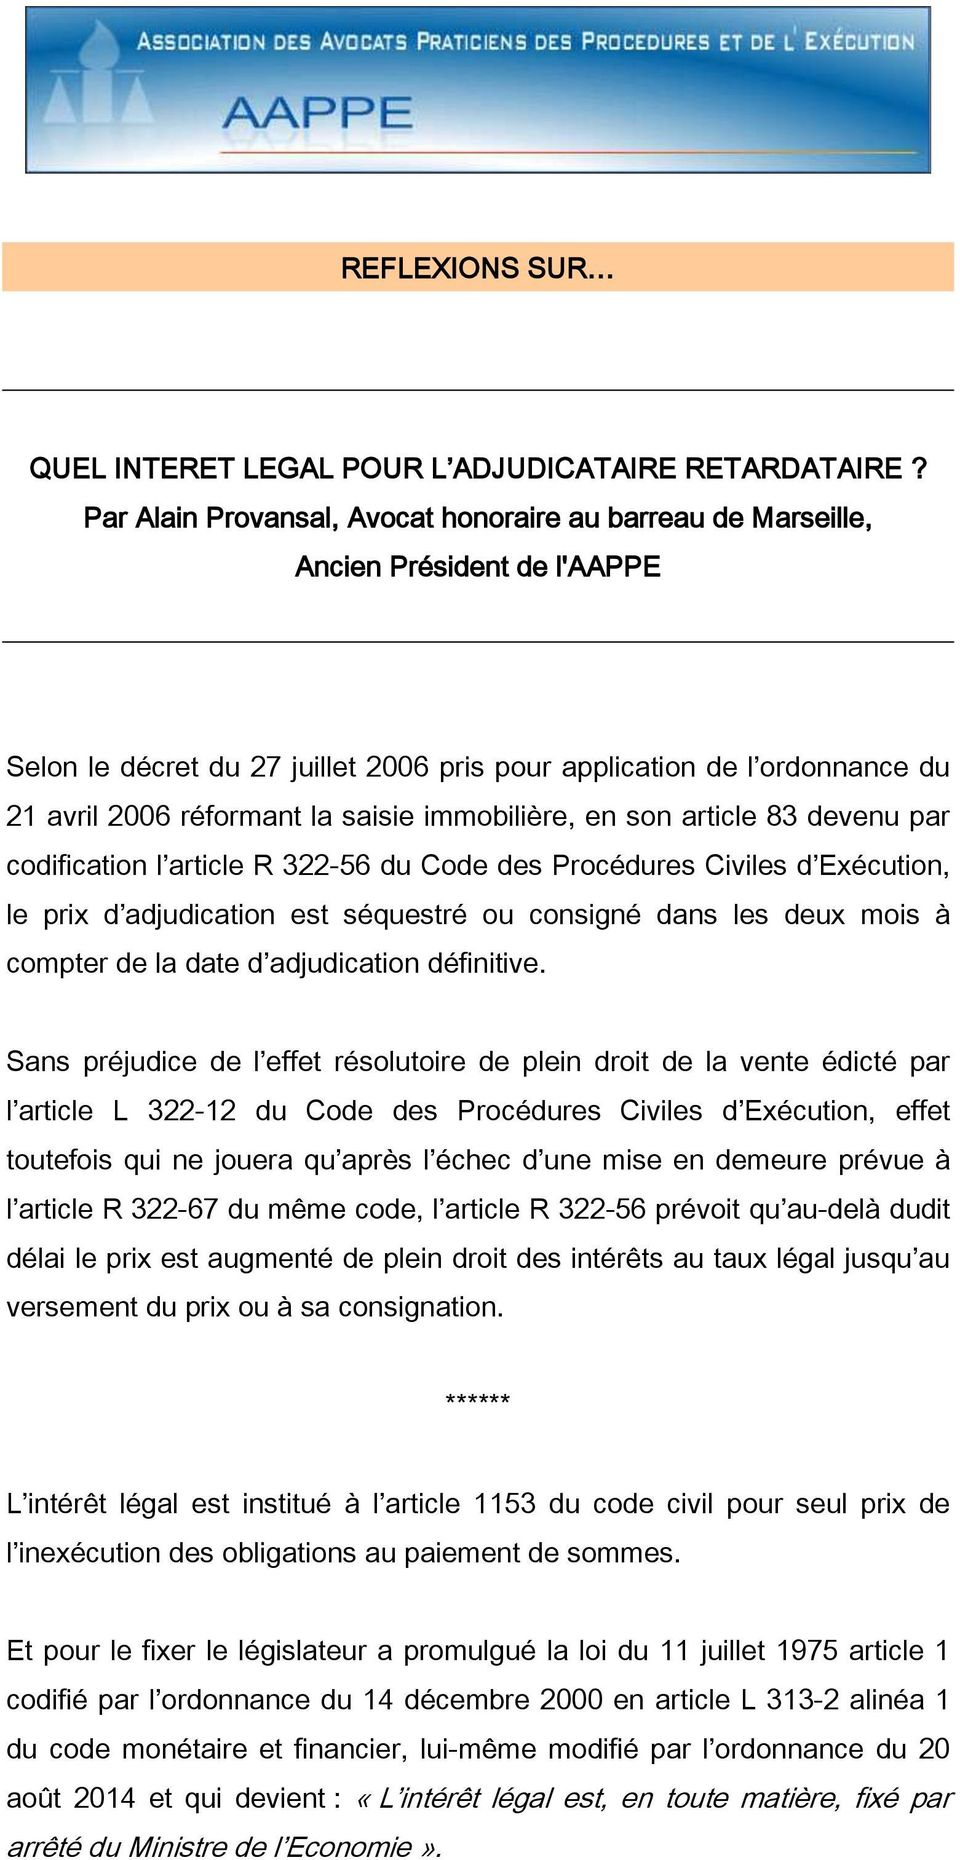 saisie immobilière, en son article 83 devenu par codification l article R 322-56 du Code des Procédures Civiles d Exécution, le prix d adjudication est séquestré ou consigné dans les deux mois à